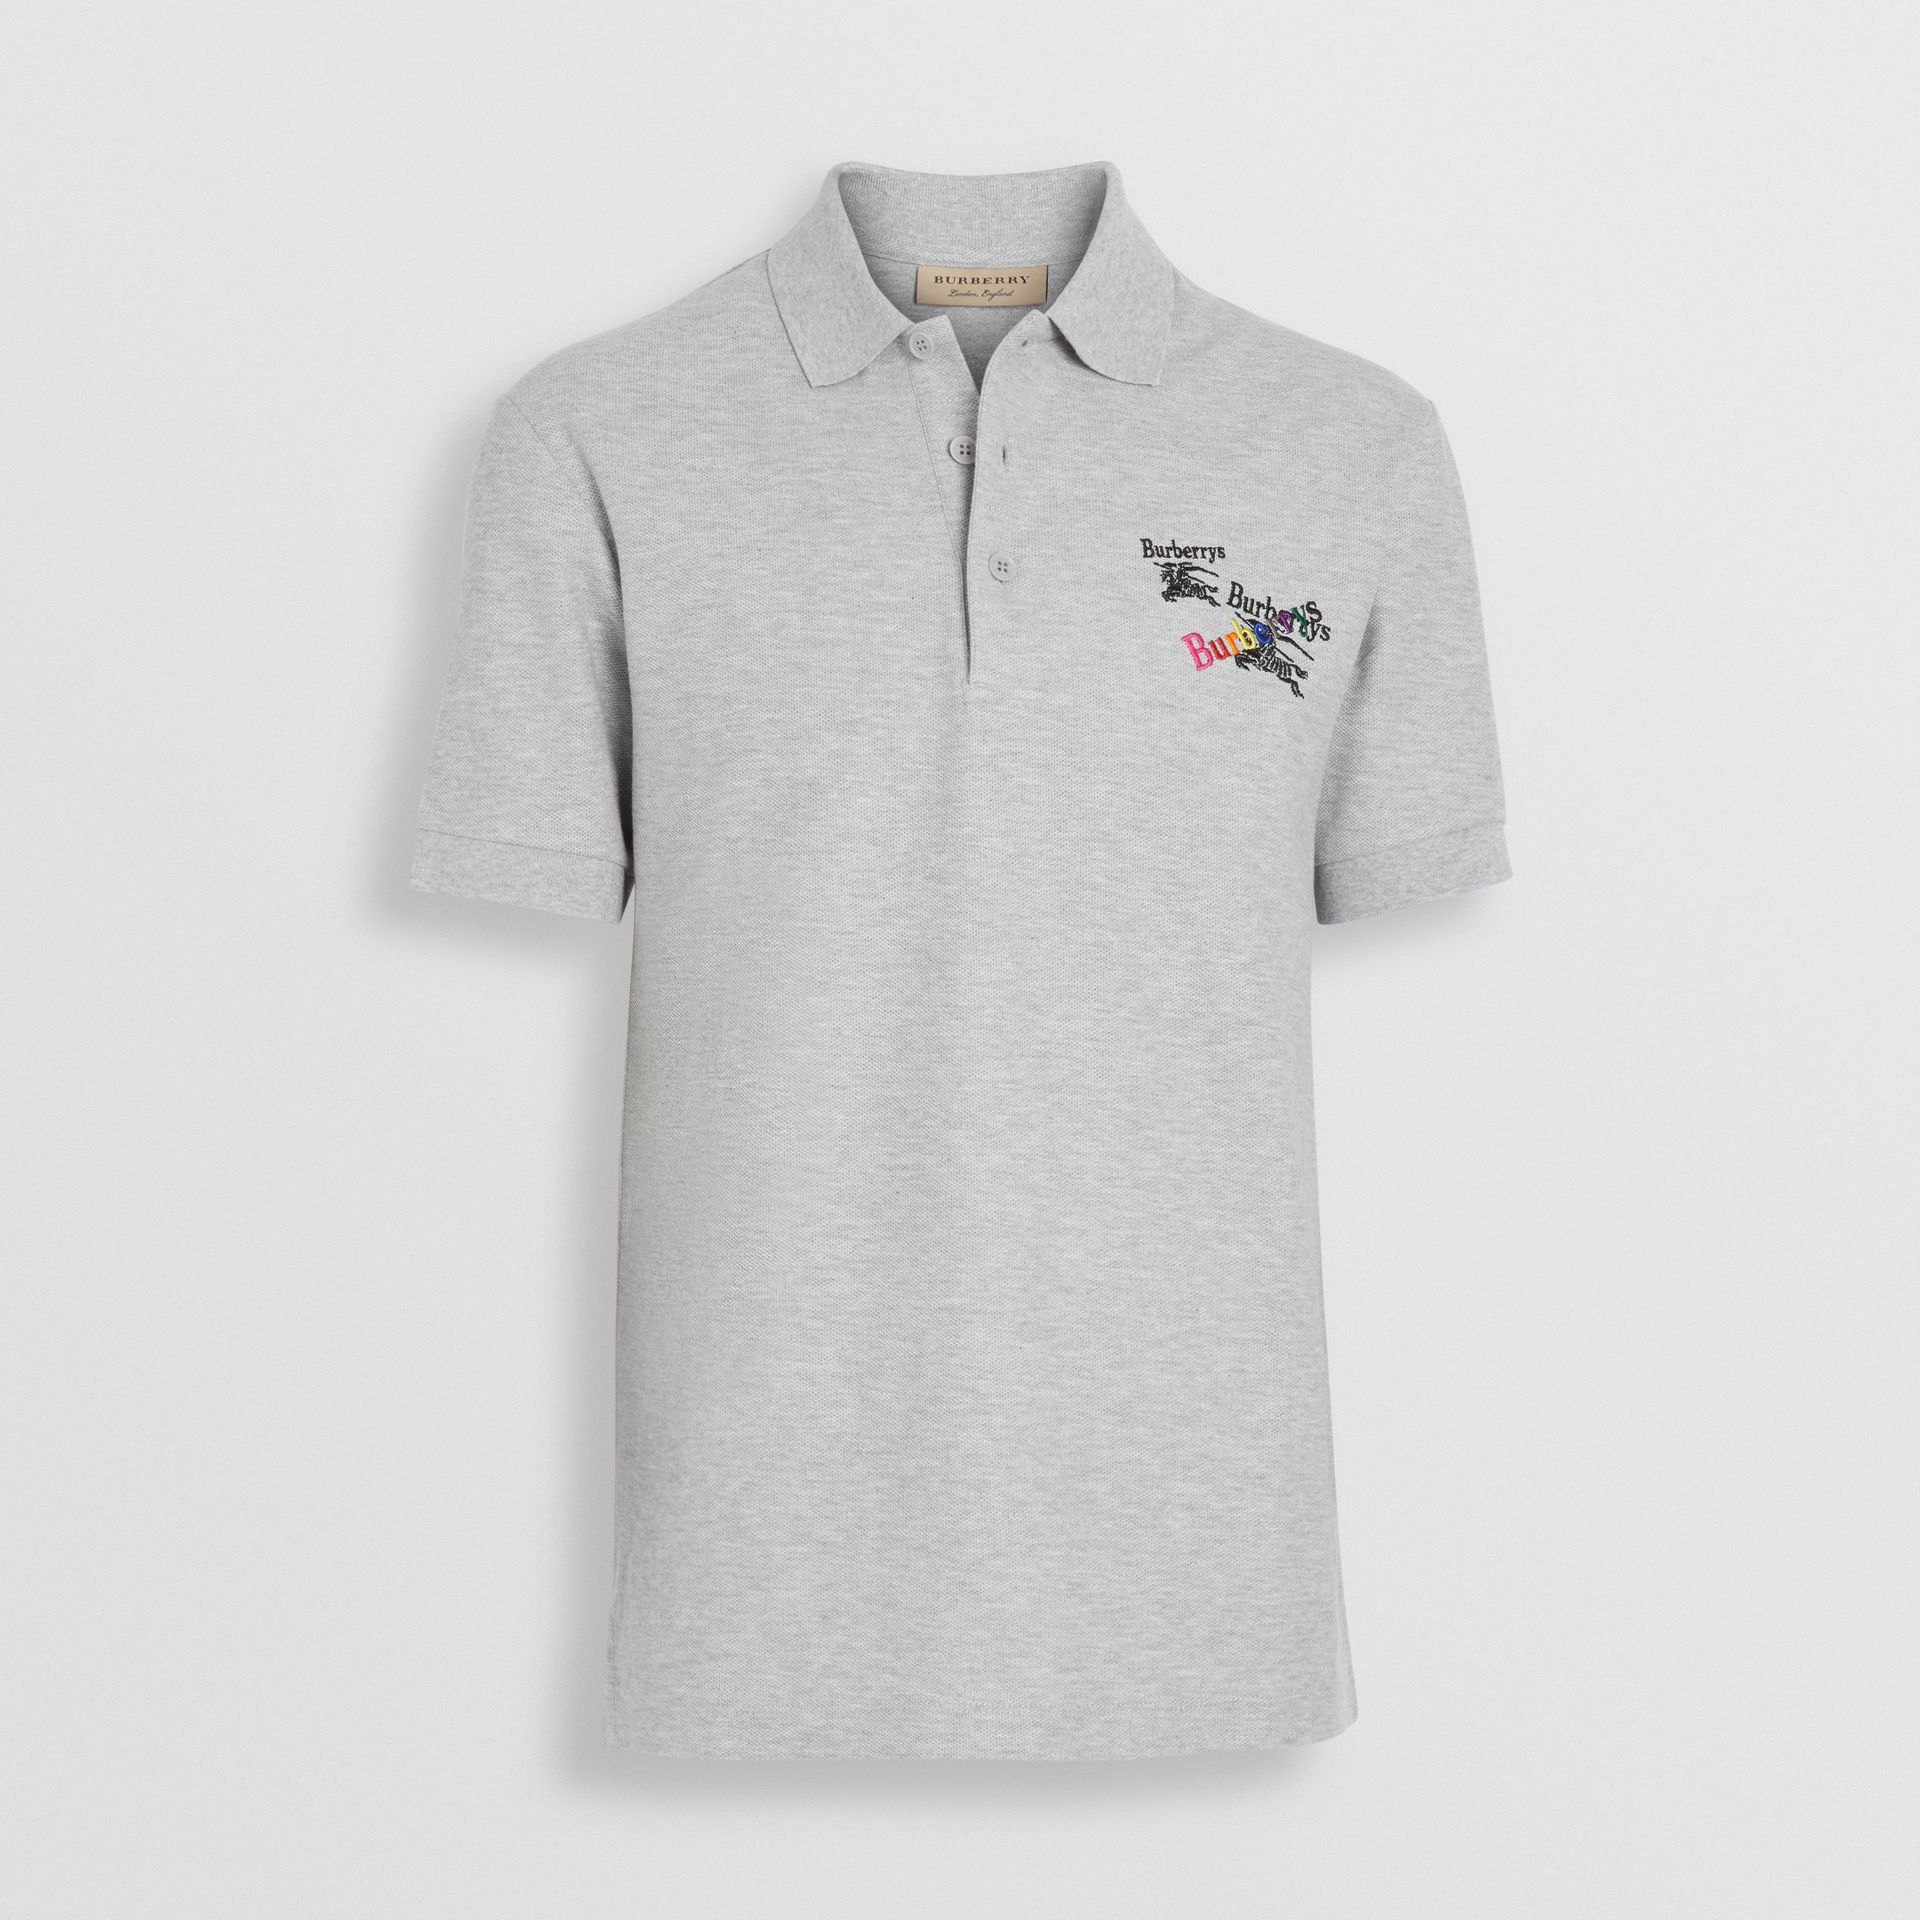 Triple Archive Logo Cotton Piqué Polo Shirt in Pale Grey Melange - Men | Burberry - gallery image 3